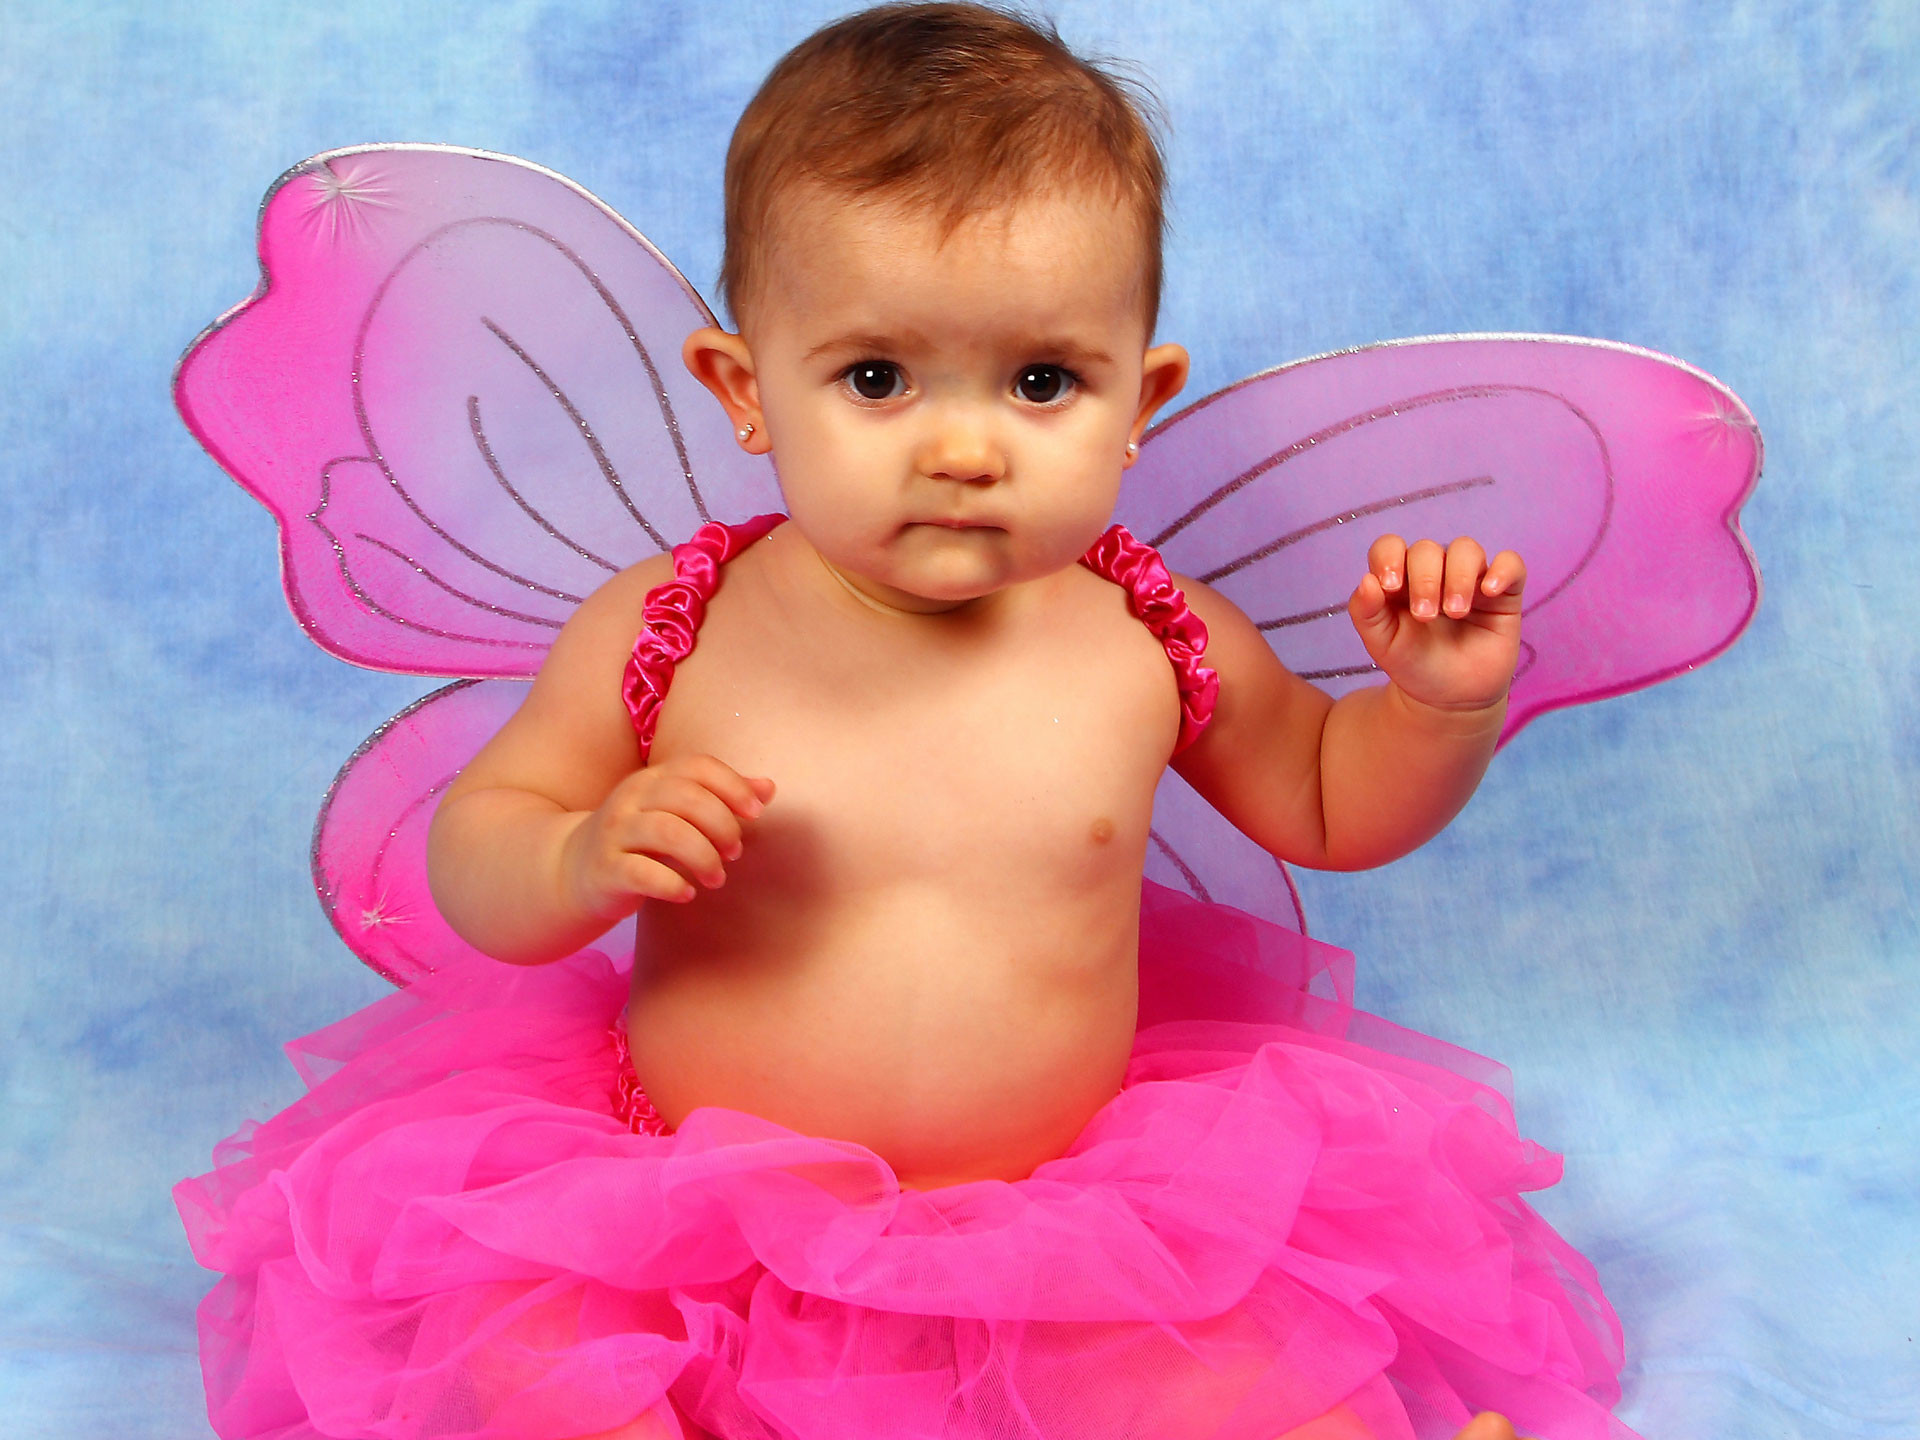 1920x1440 cute baby new hd wallpapers 3D